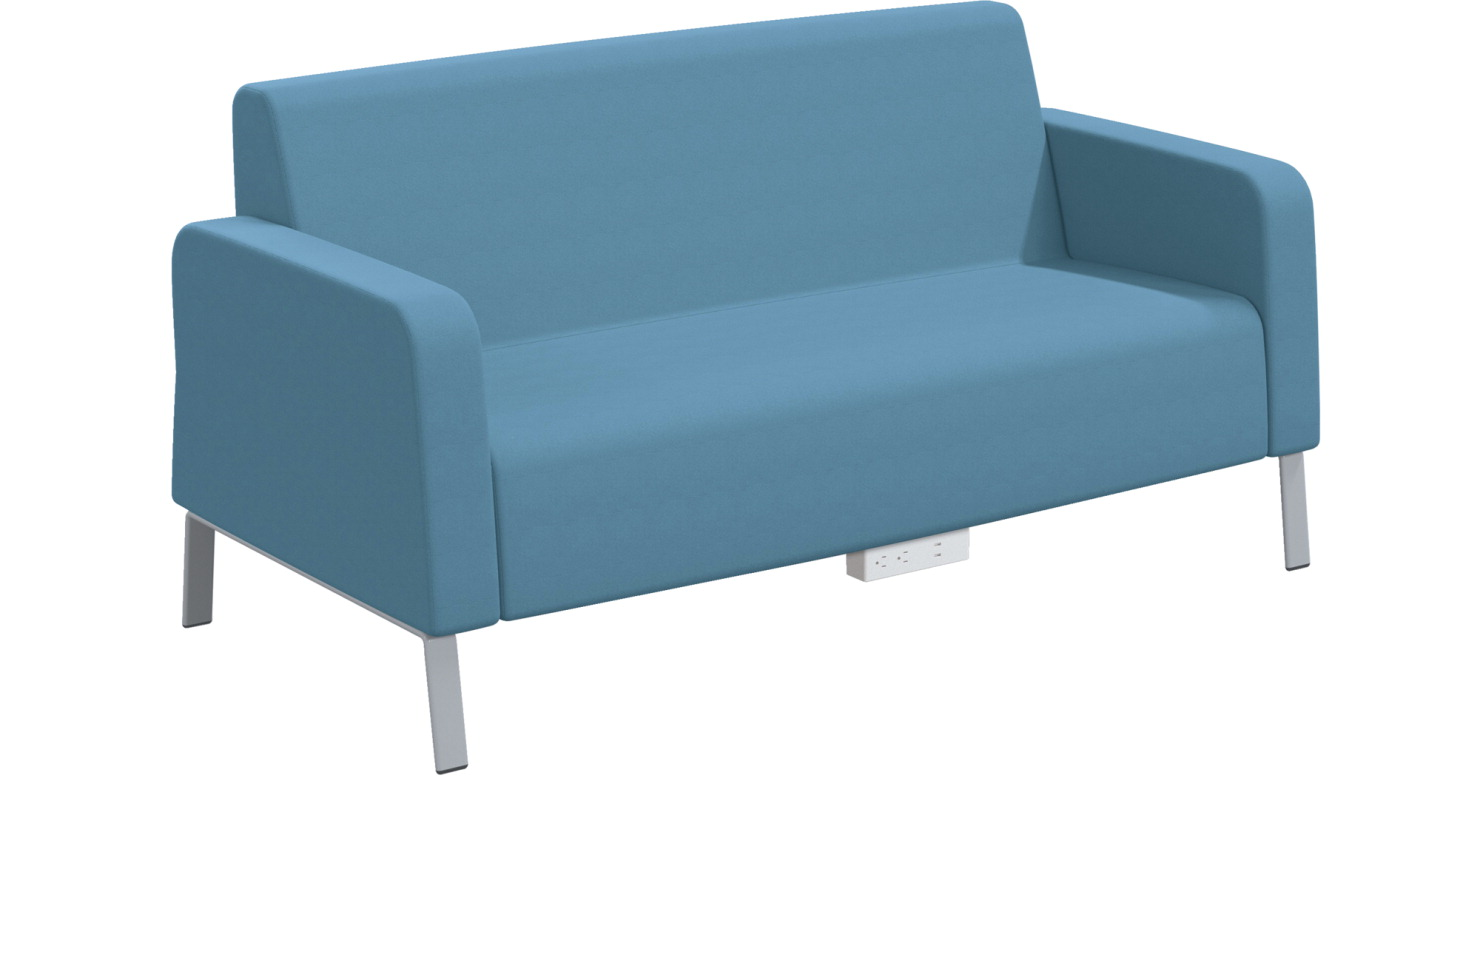 Classroom Select Soft Seating Armed Sofa, Power Under Front, 66 x 32 x 34 Inches, Various Options